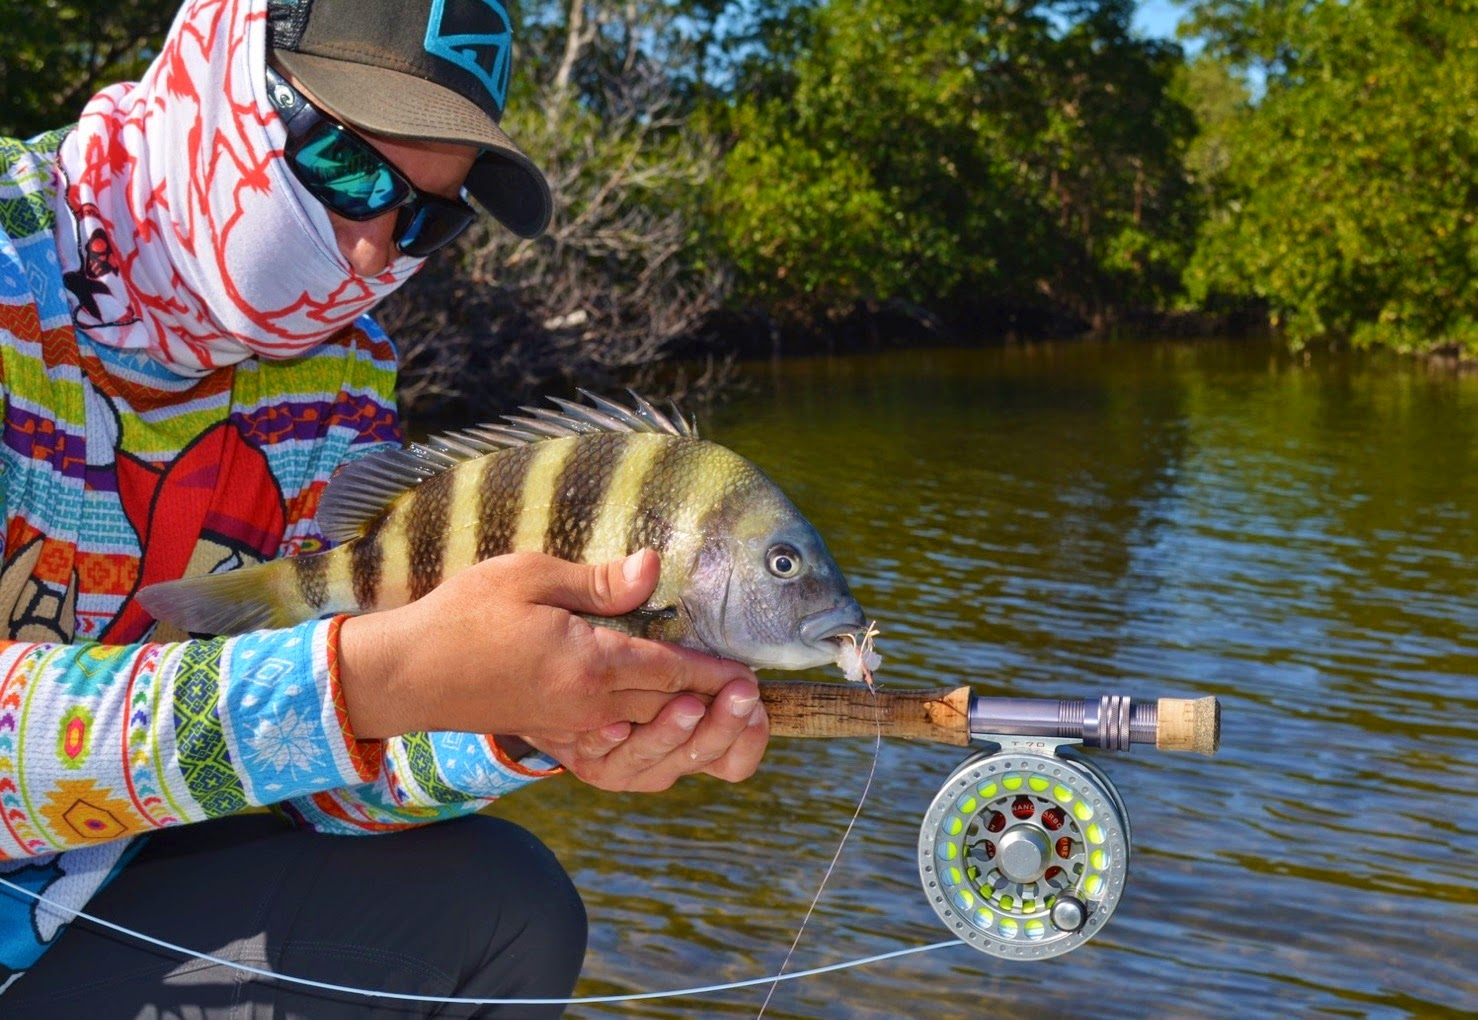 Sheepshead on Fly in Early Spring